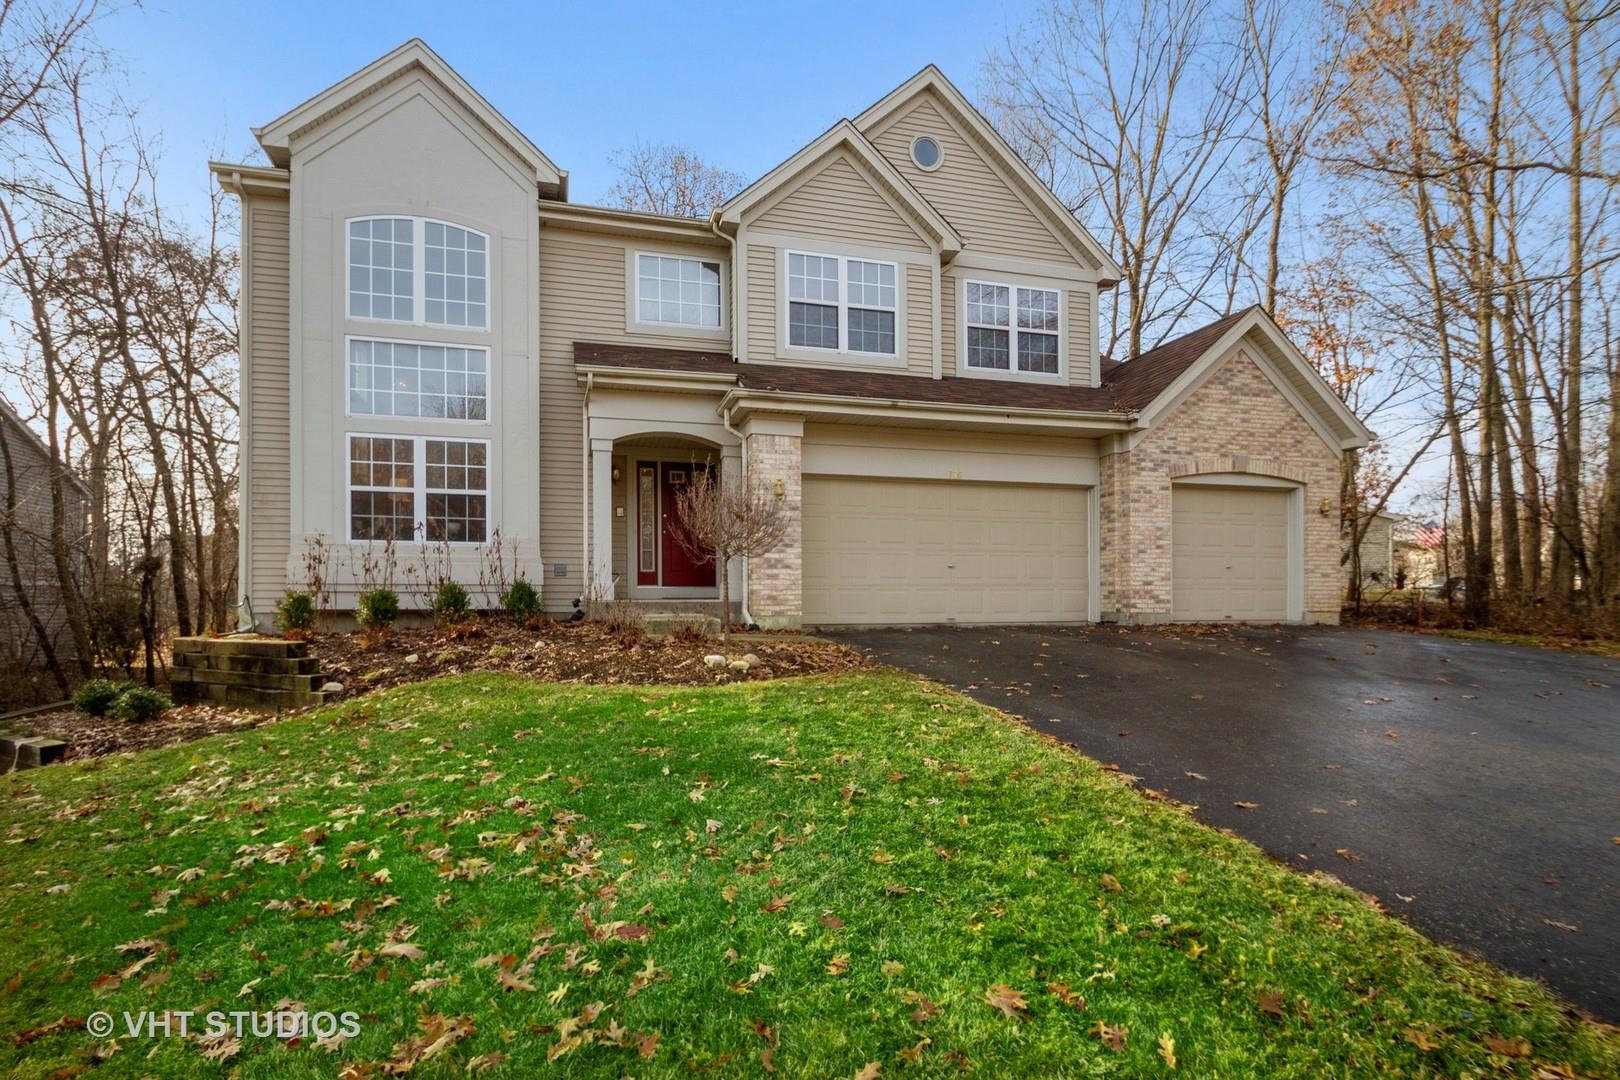 726 Seybrooke Lane, Crystal Lake, IL 60012 - #: 10561450